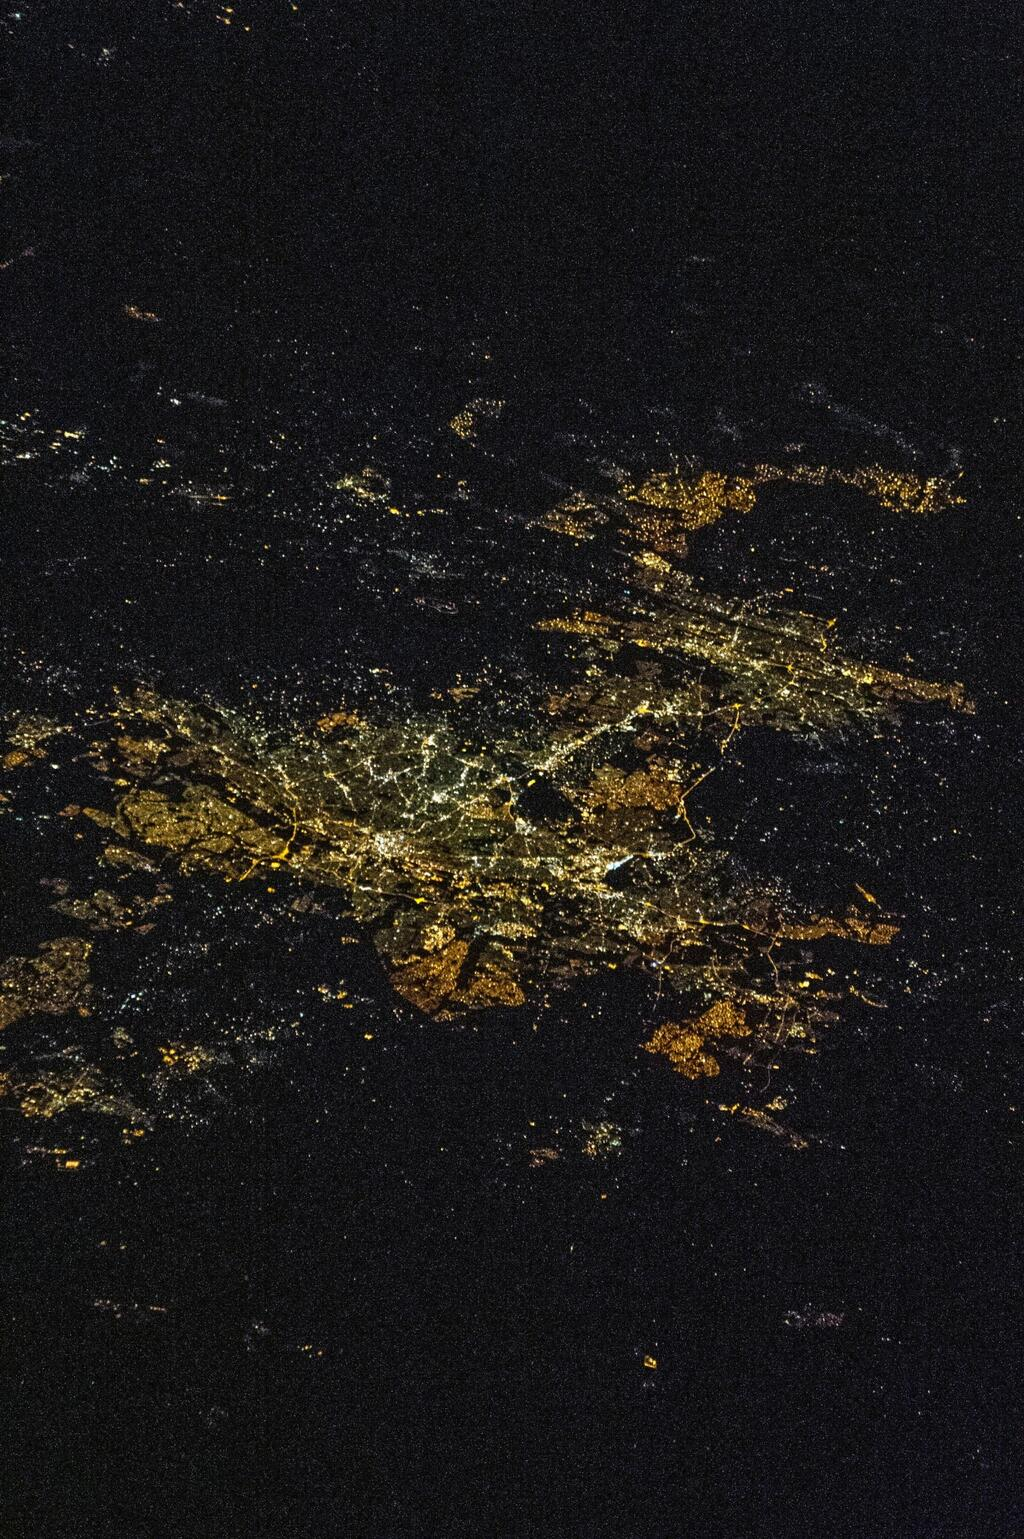 Johannesburg-Pretoria, South Africa, at night, from #ISS, April 26